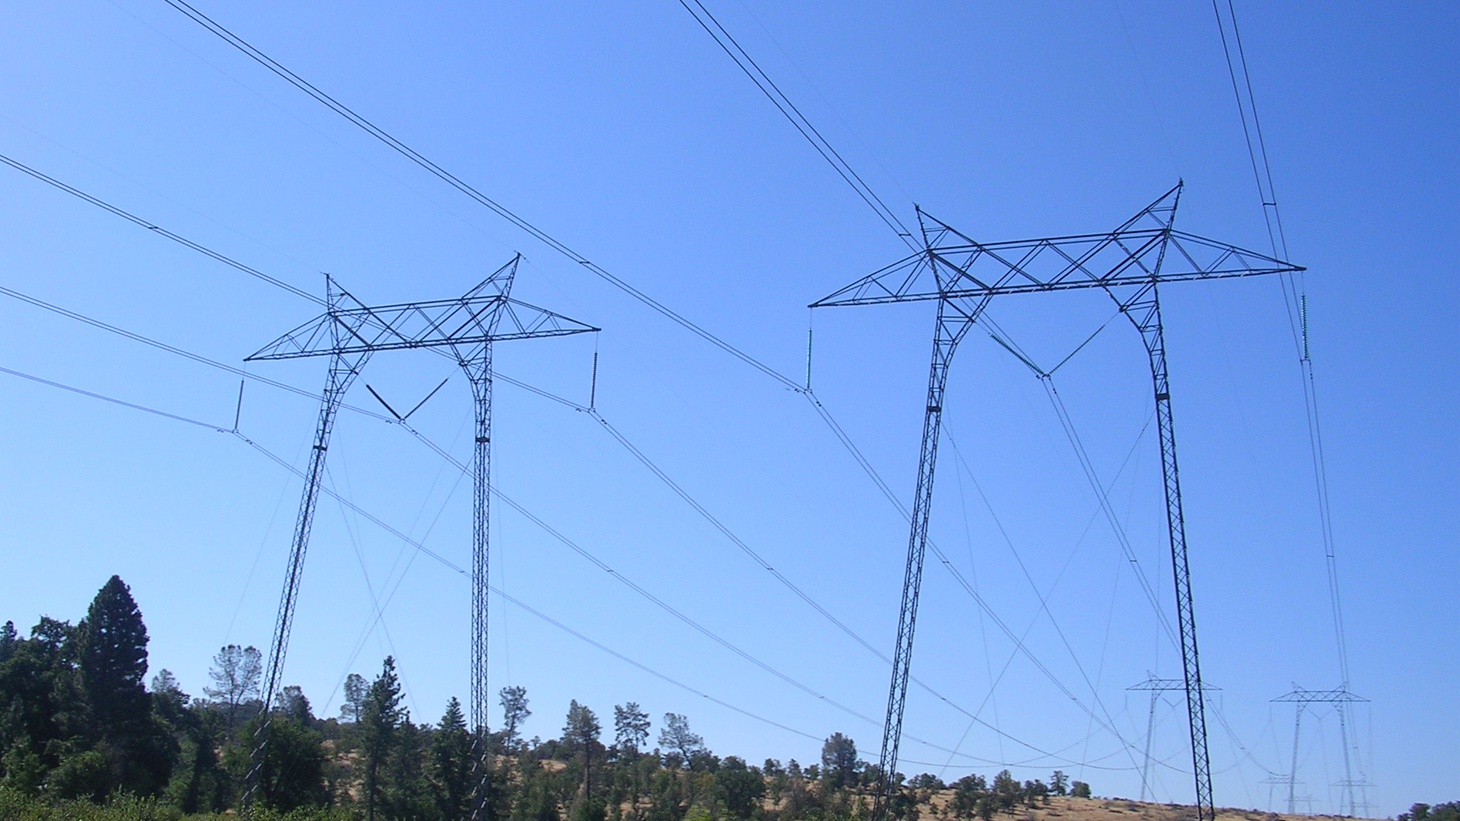 Pacific Gas and Electric 500 kV AC power lines crossing California State Route 36 north of Table Mountain, cutting through the woodlands of the Sierra foothills east of Red Bluff, Tehama County, Northern California.